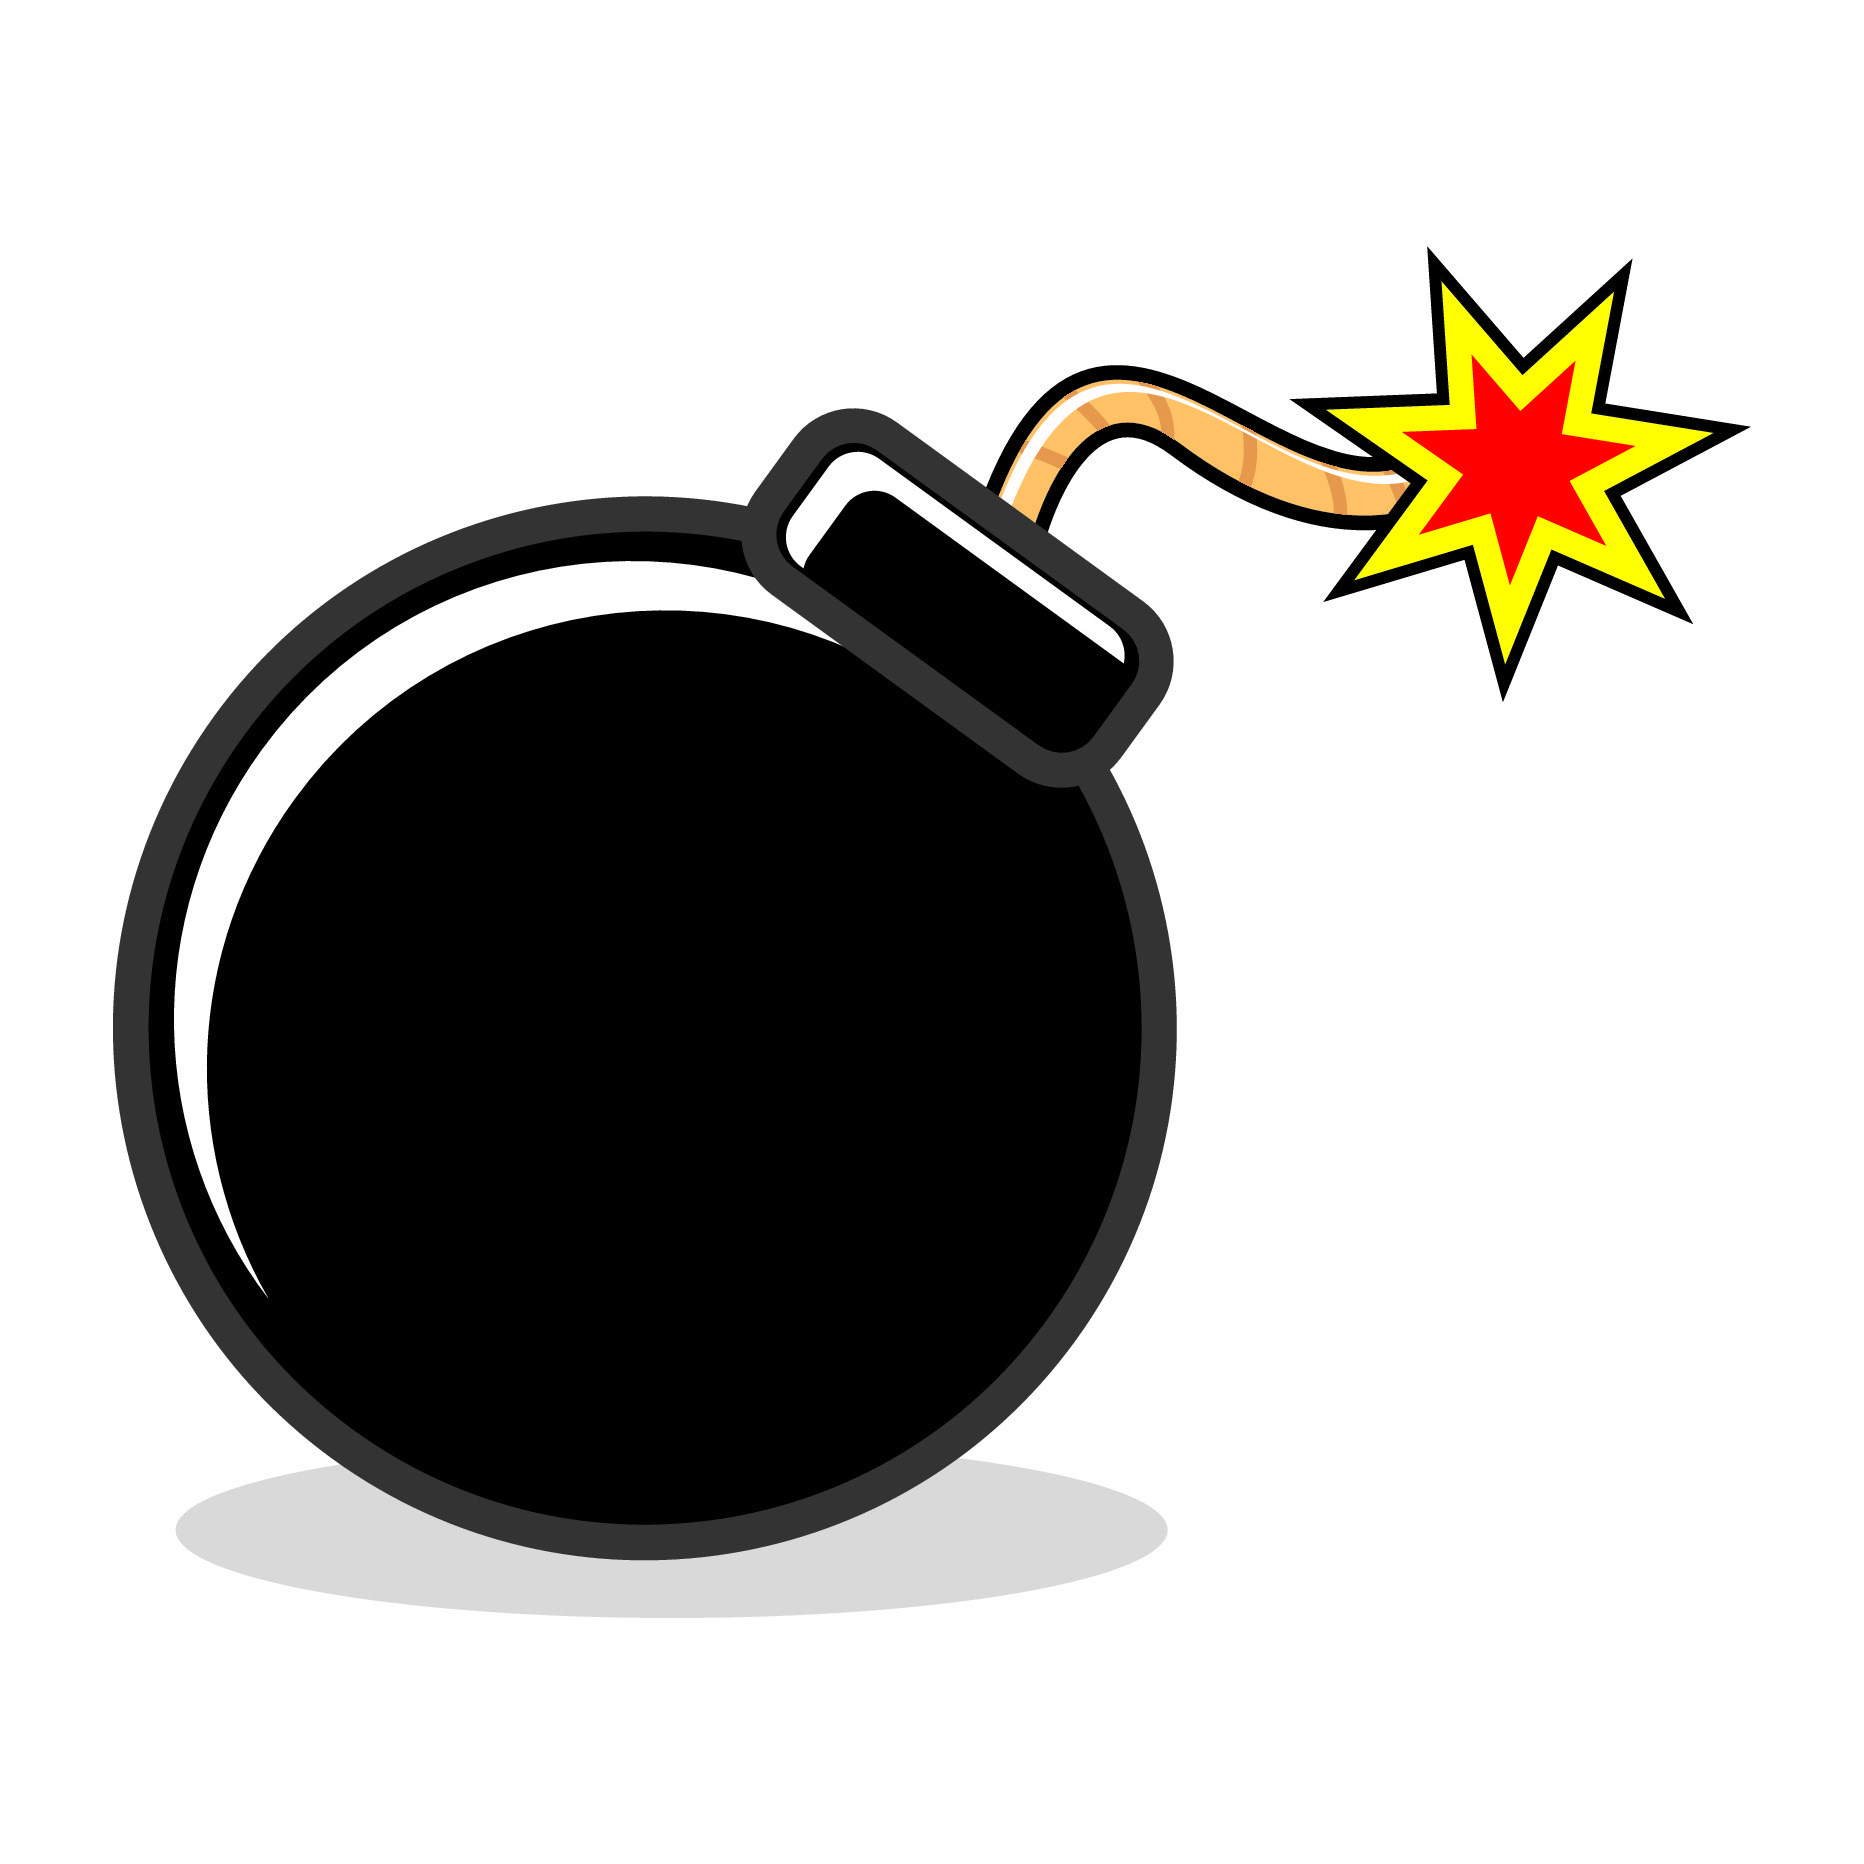 Bomb clipart. Amazing looking to build